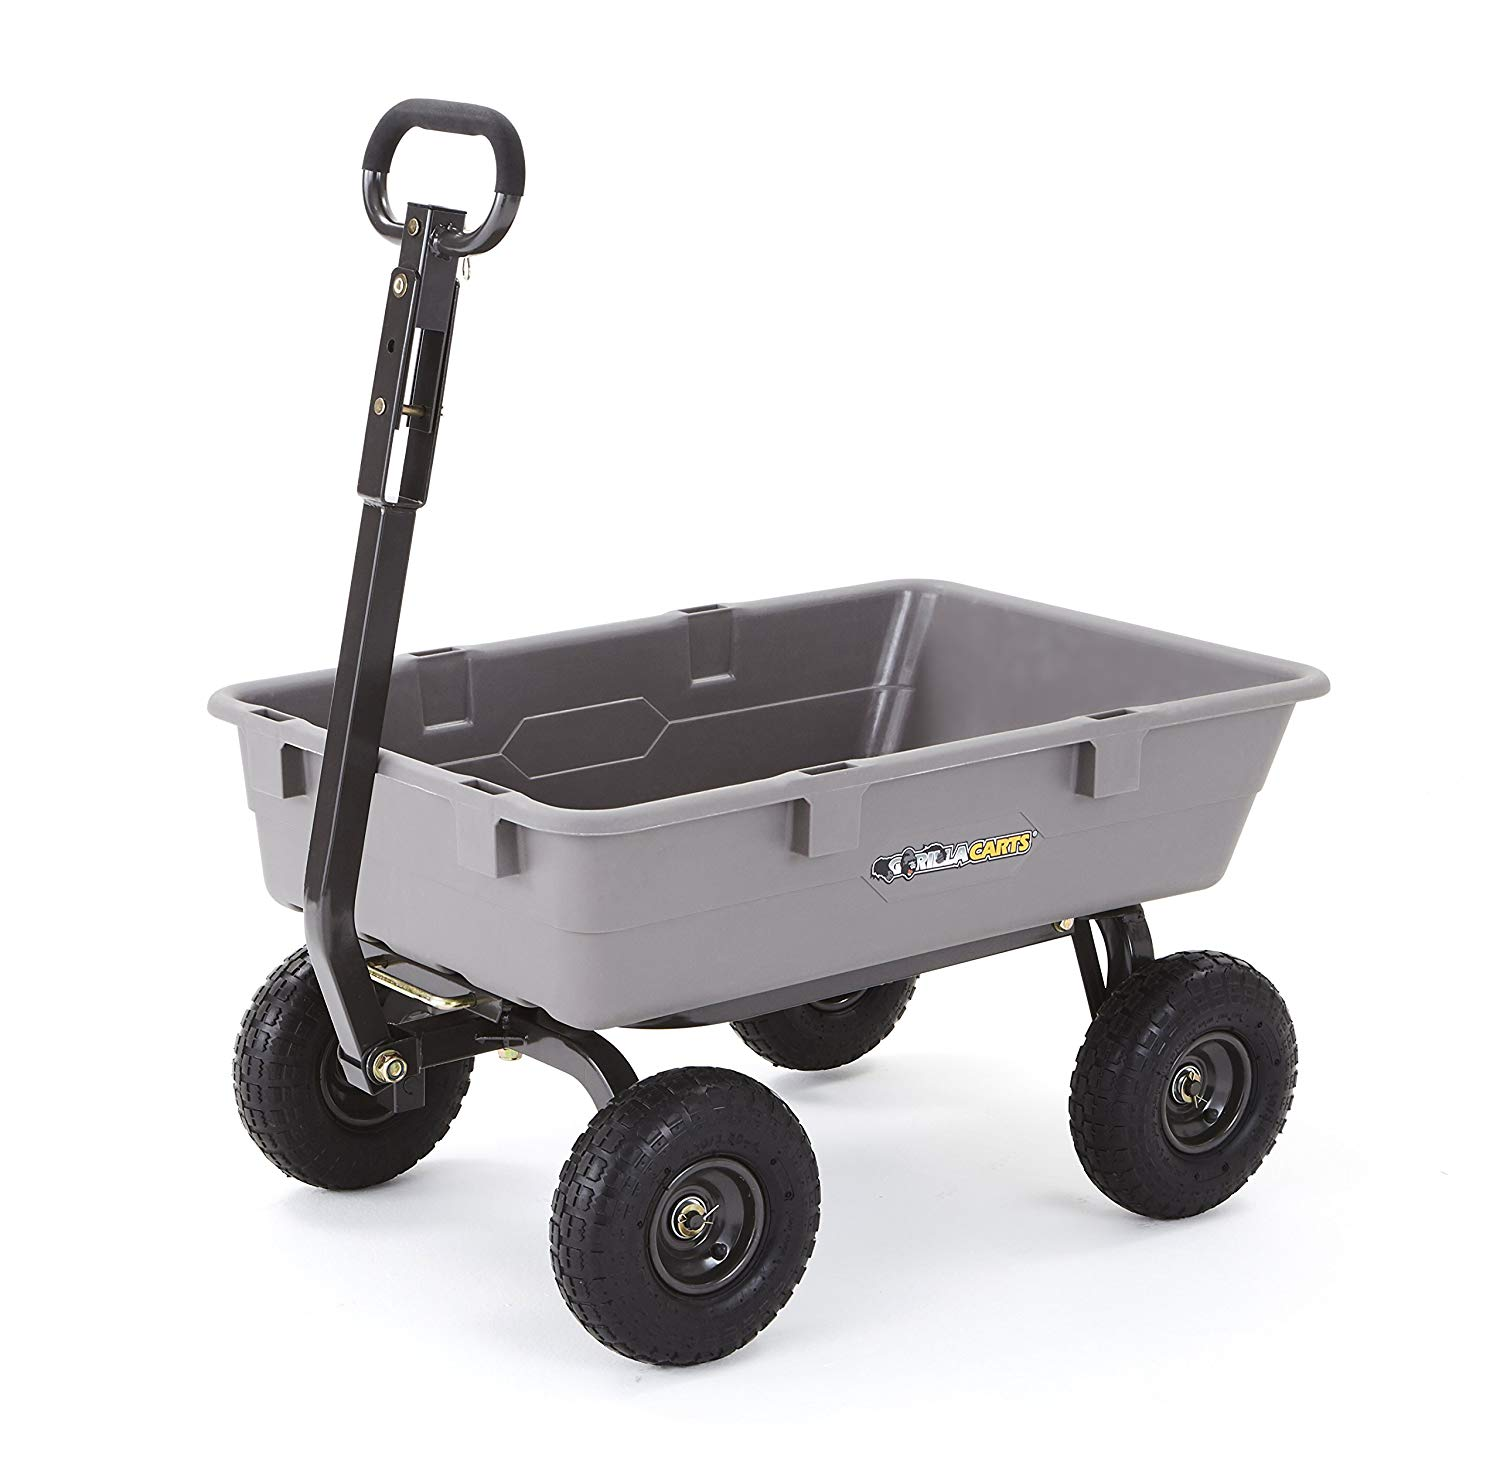 "Gorilla Carts Poly Garden Dump Cart with Steel Frame and 10"" Pneumatic Tires,800-lbs. Capacity, Gray"